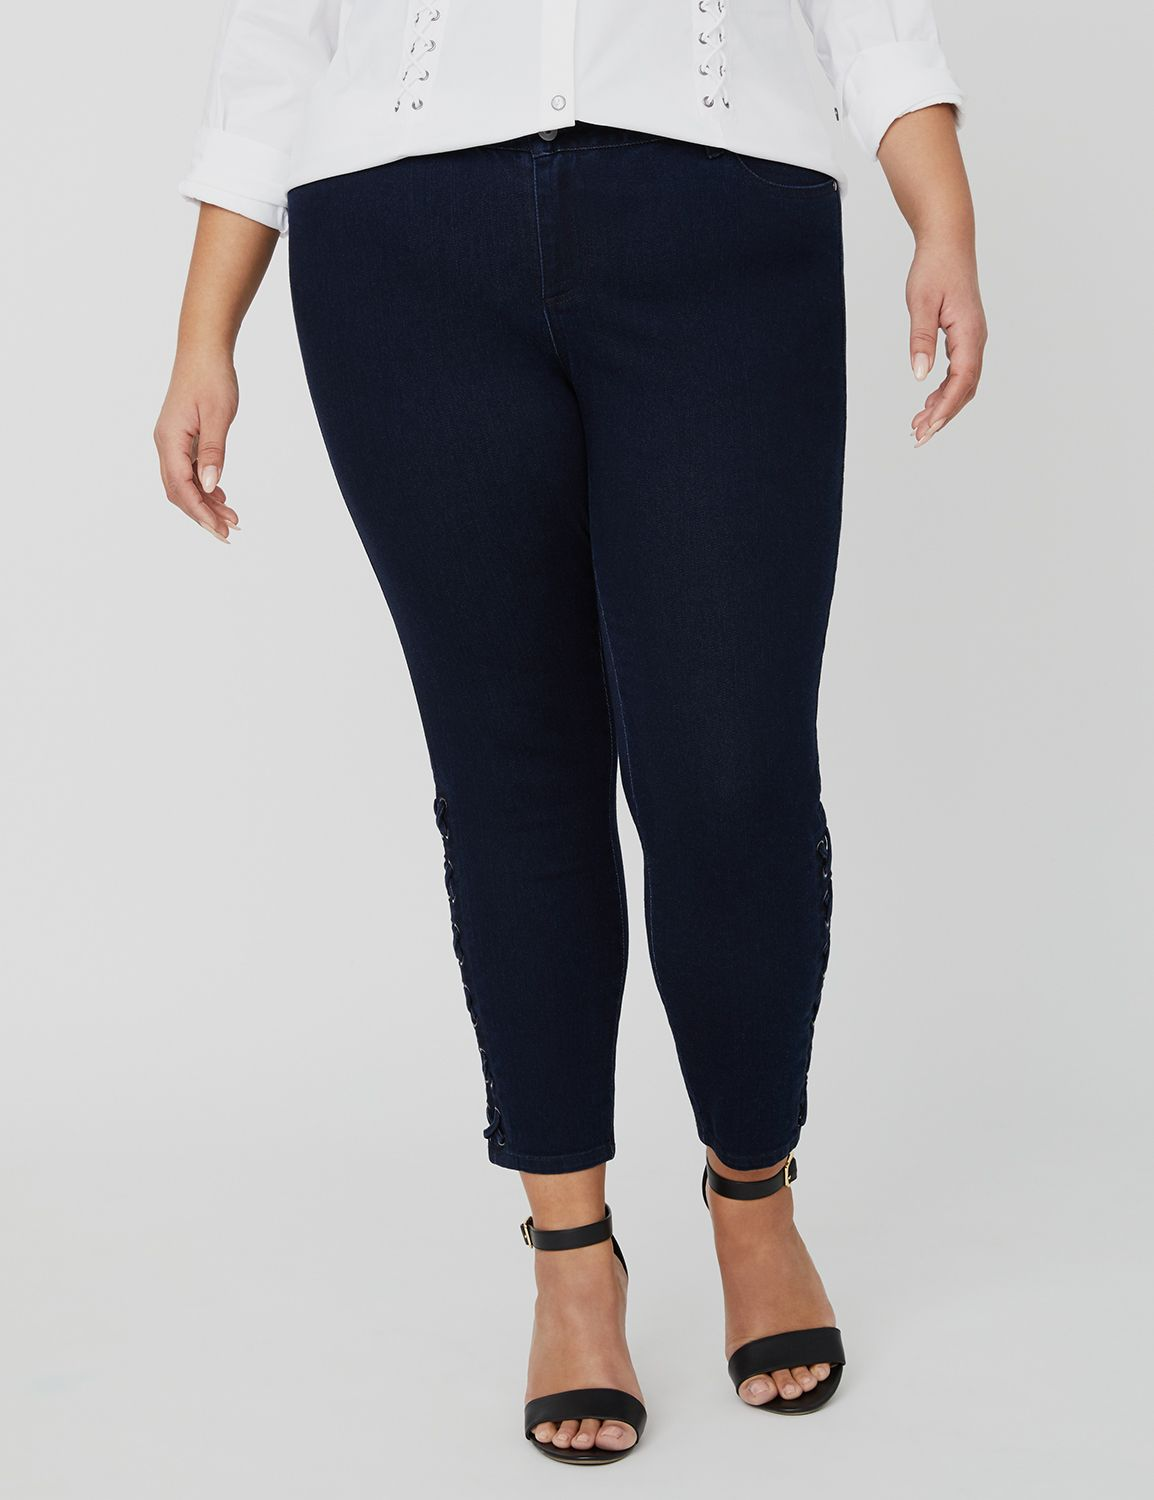 Curvy Collection Lace-Up Jean 1088607 Curvy Collection Sateen (11 MP-300099465